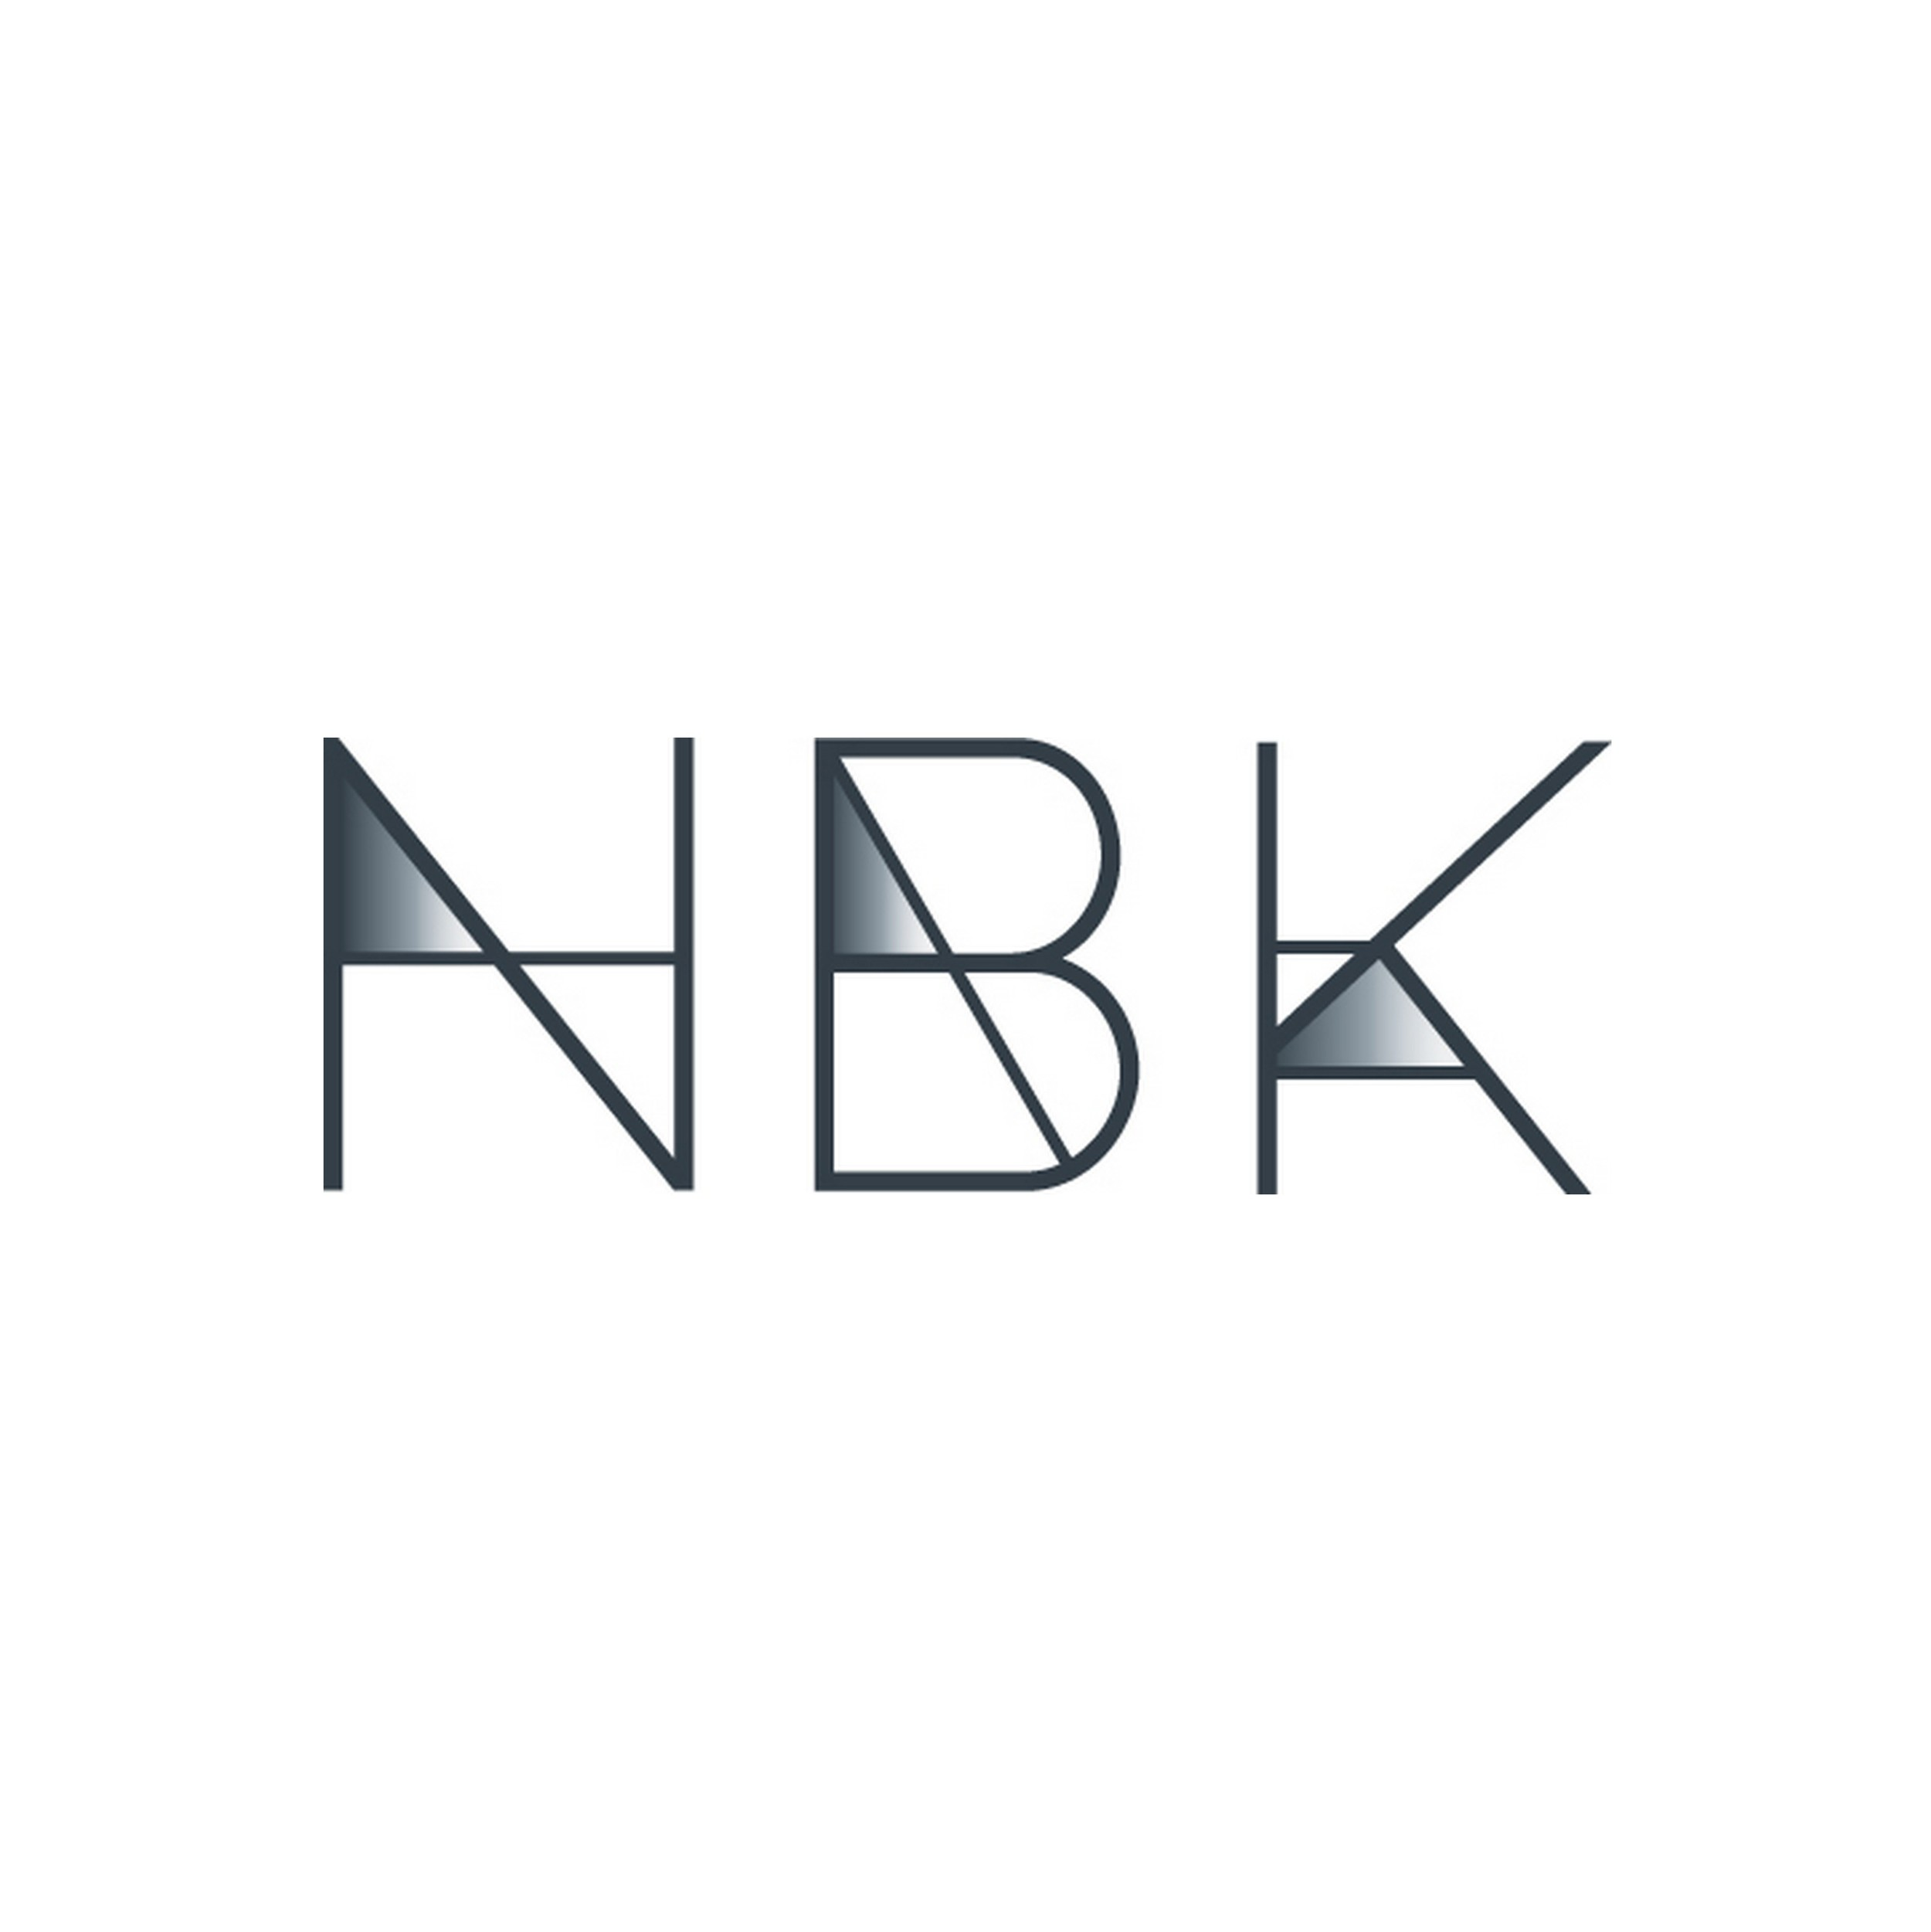 A Playful Day is proud to be sponsored by NorthBound Knitting, Sensuous Yarn: Modern designs. NBK has a new home! Please click on the banner above to visitwww.NorthBoundKnitting.com